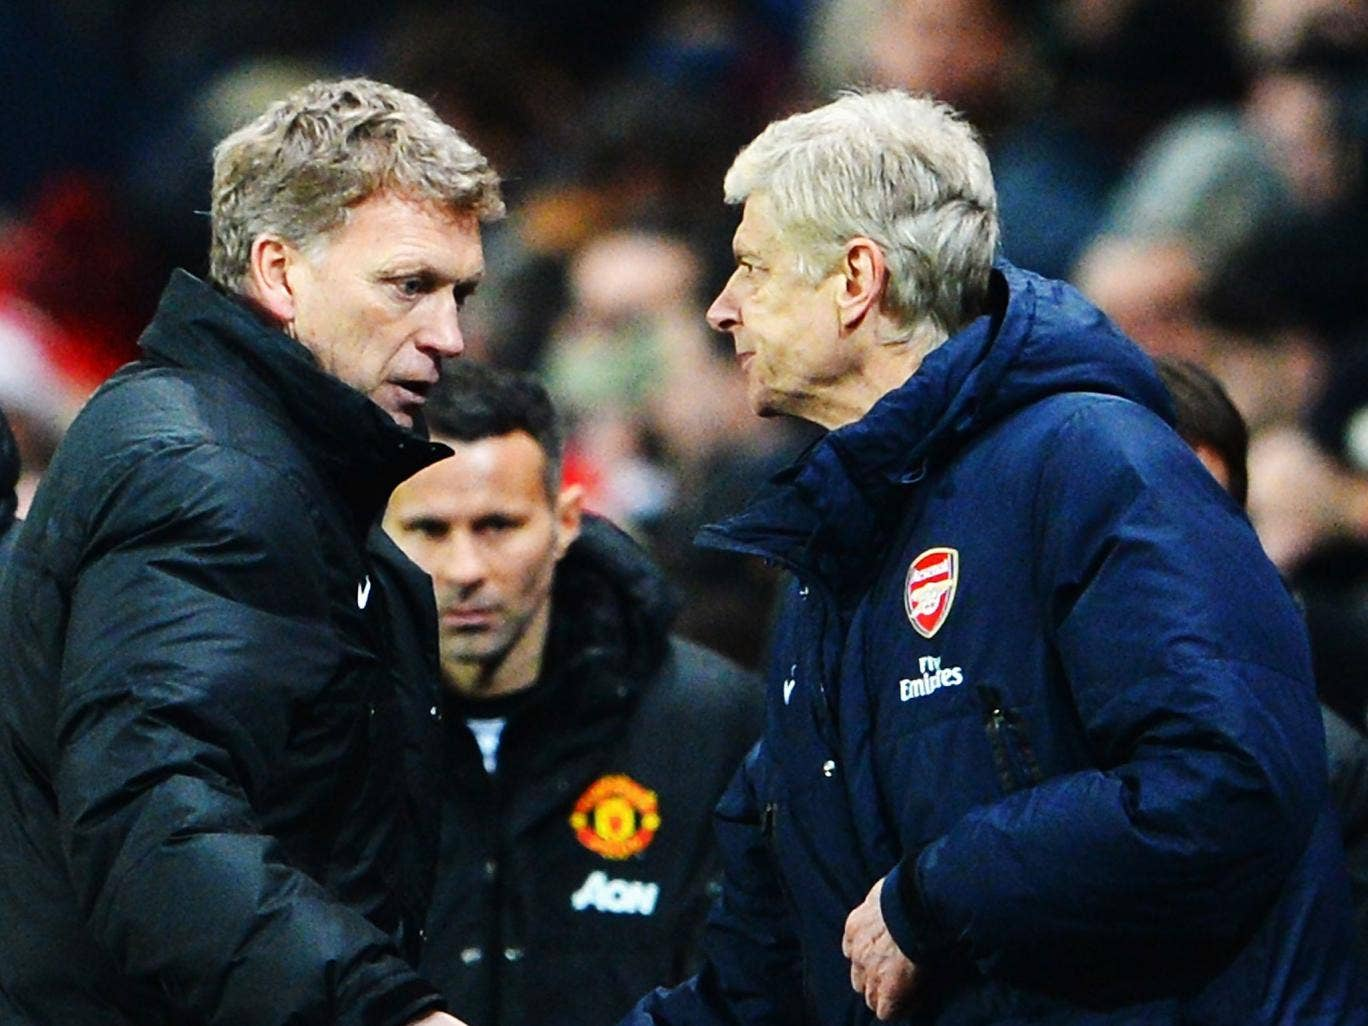 David Moyes and Arsene Wenger shake hands at the end of the match